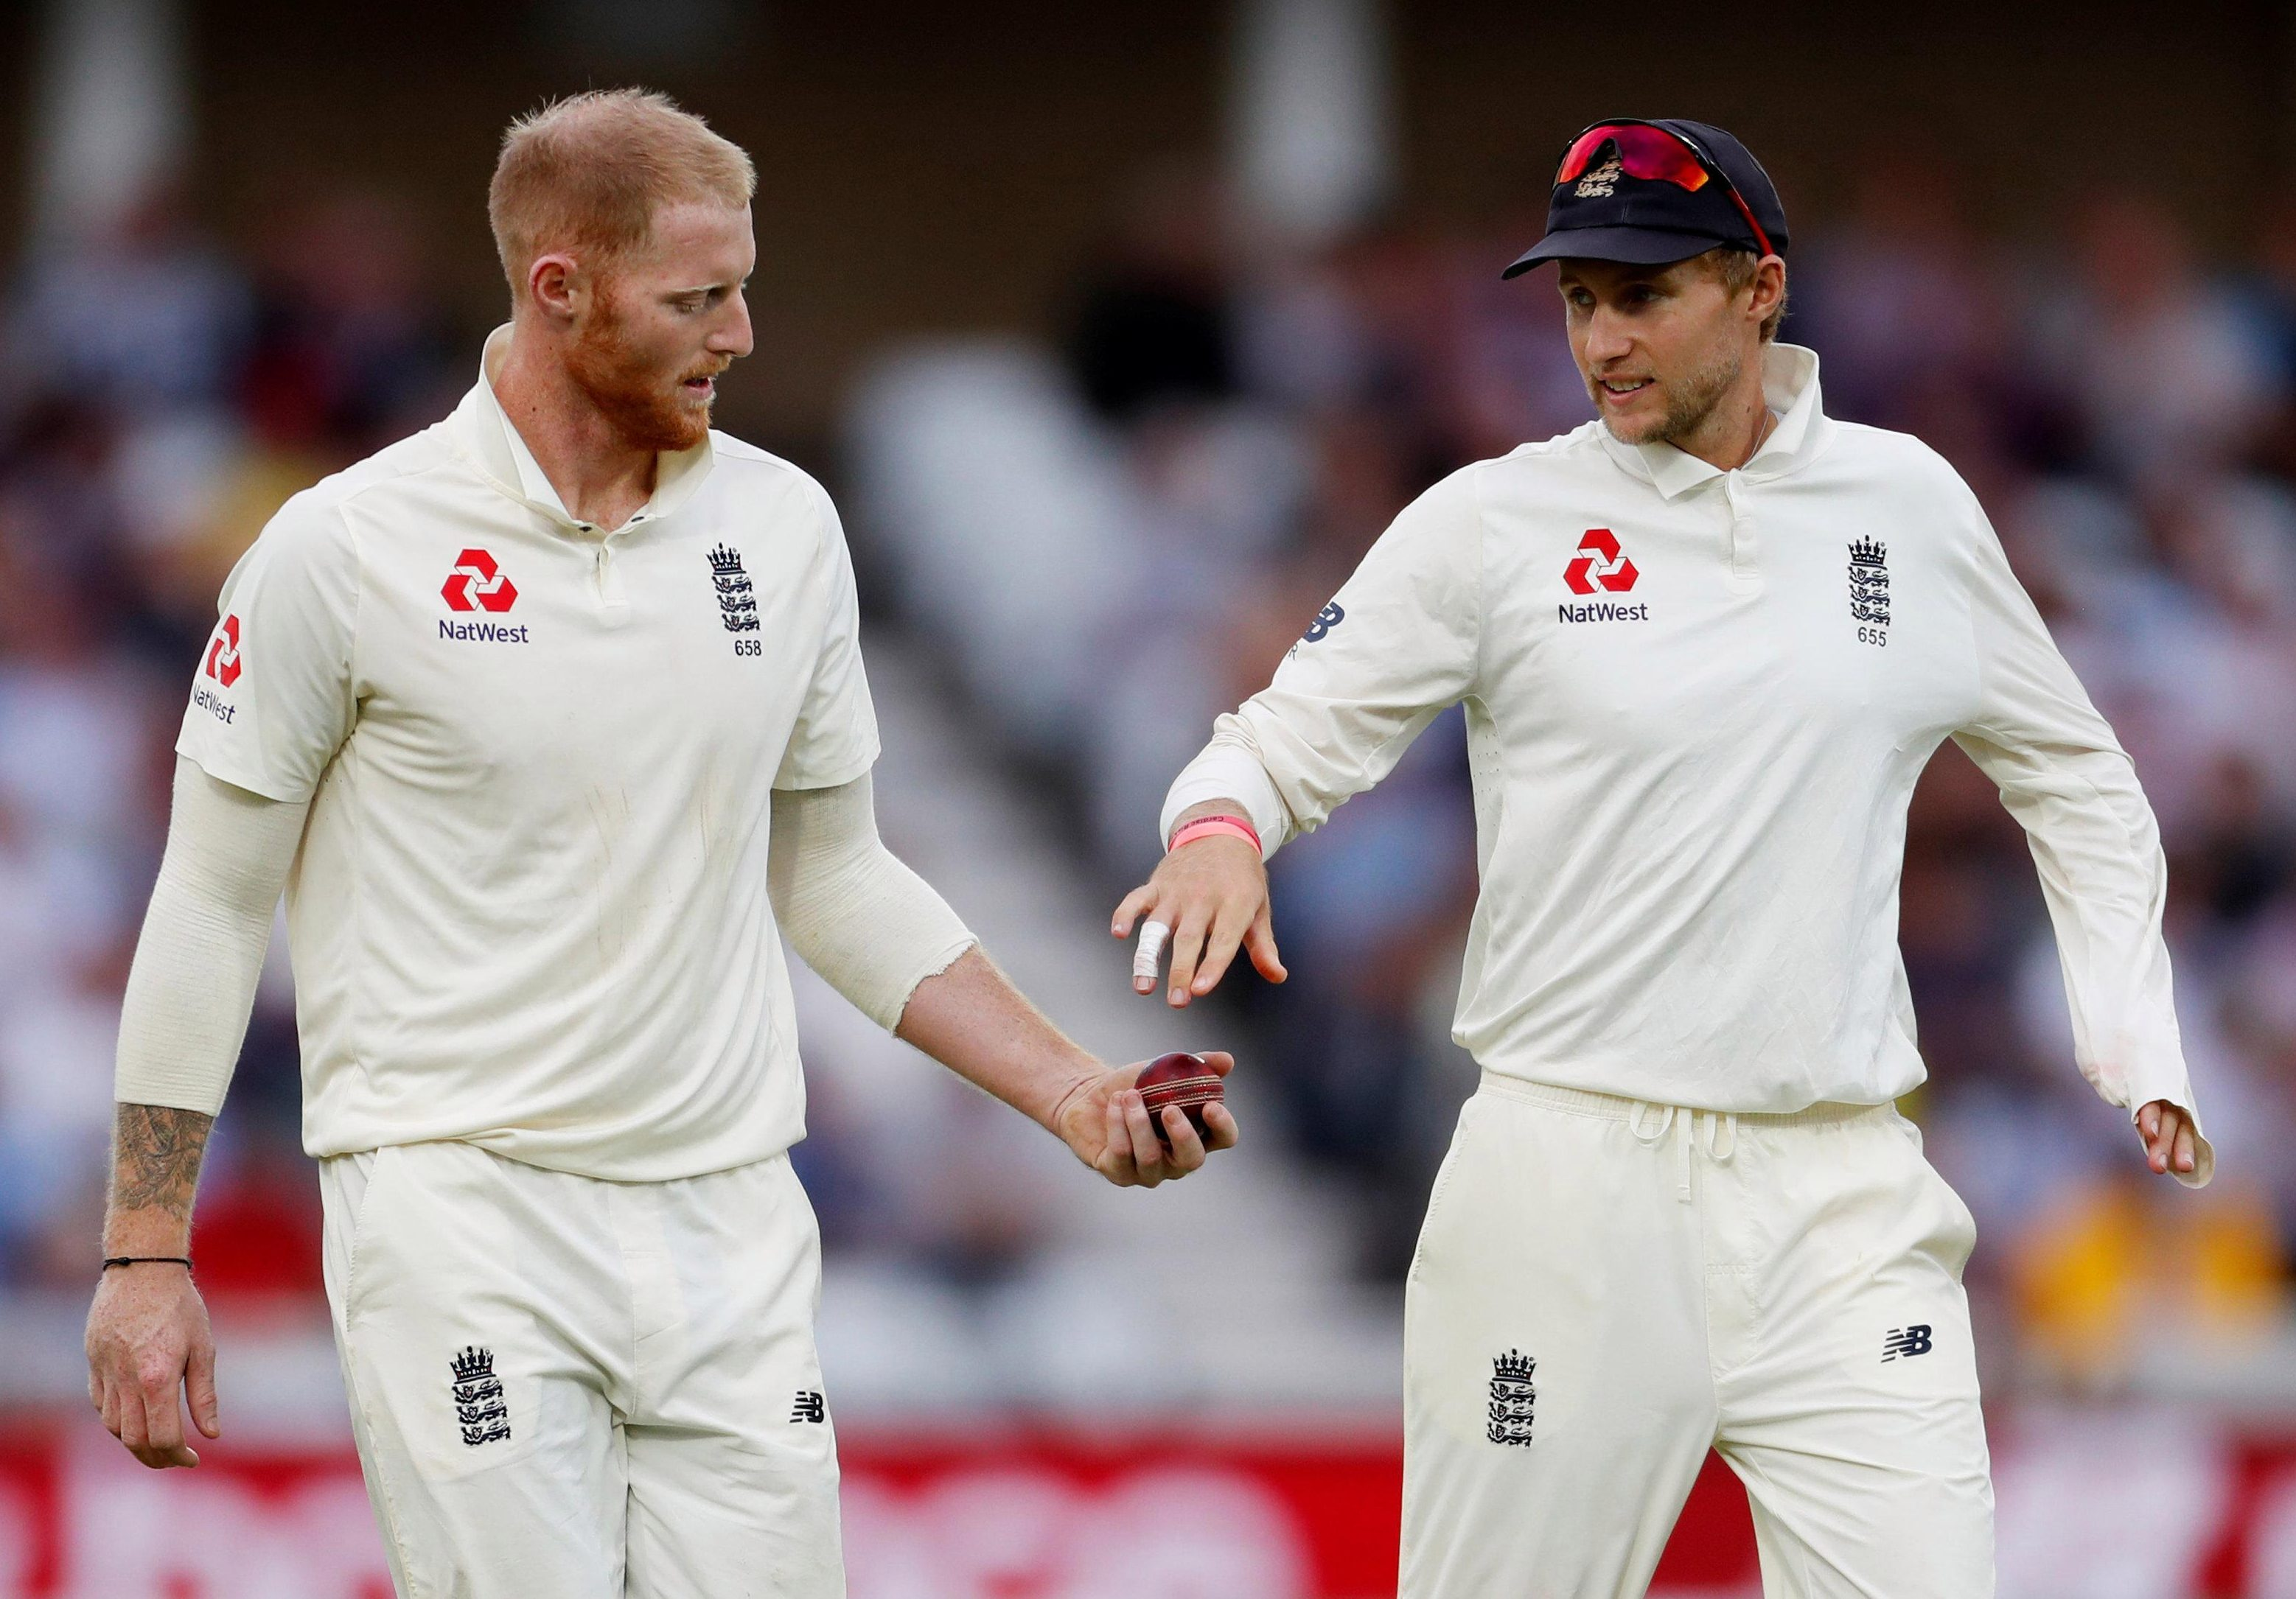 Ben Stokes will keep his place in Joe Root's England team for the last two matches after returning for the heavy Third Test defeat against India